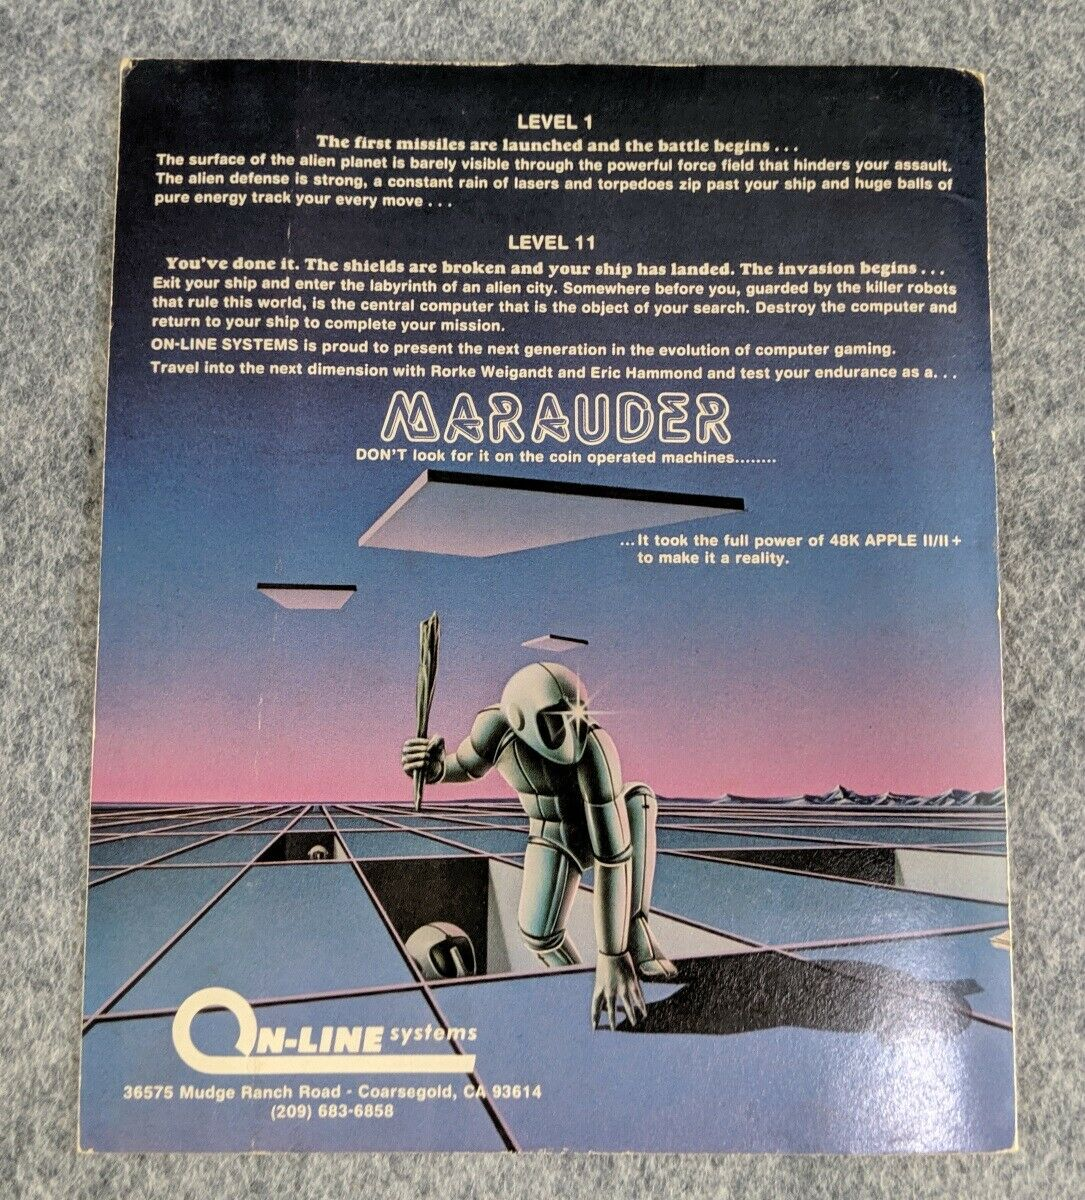 apple-marauder-03